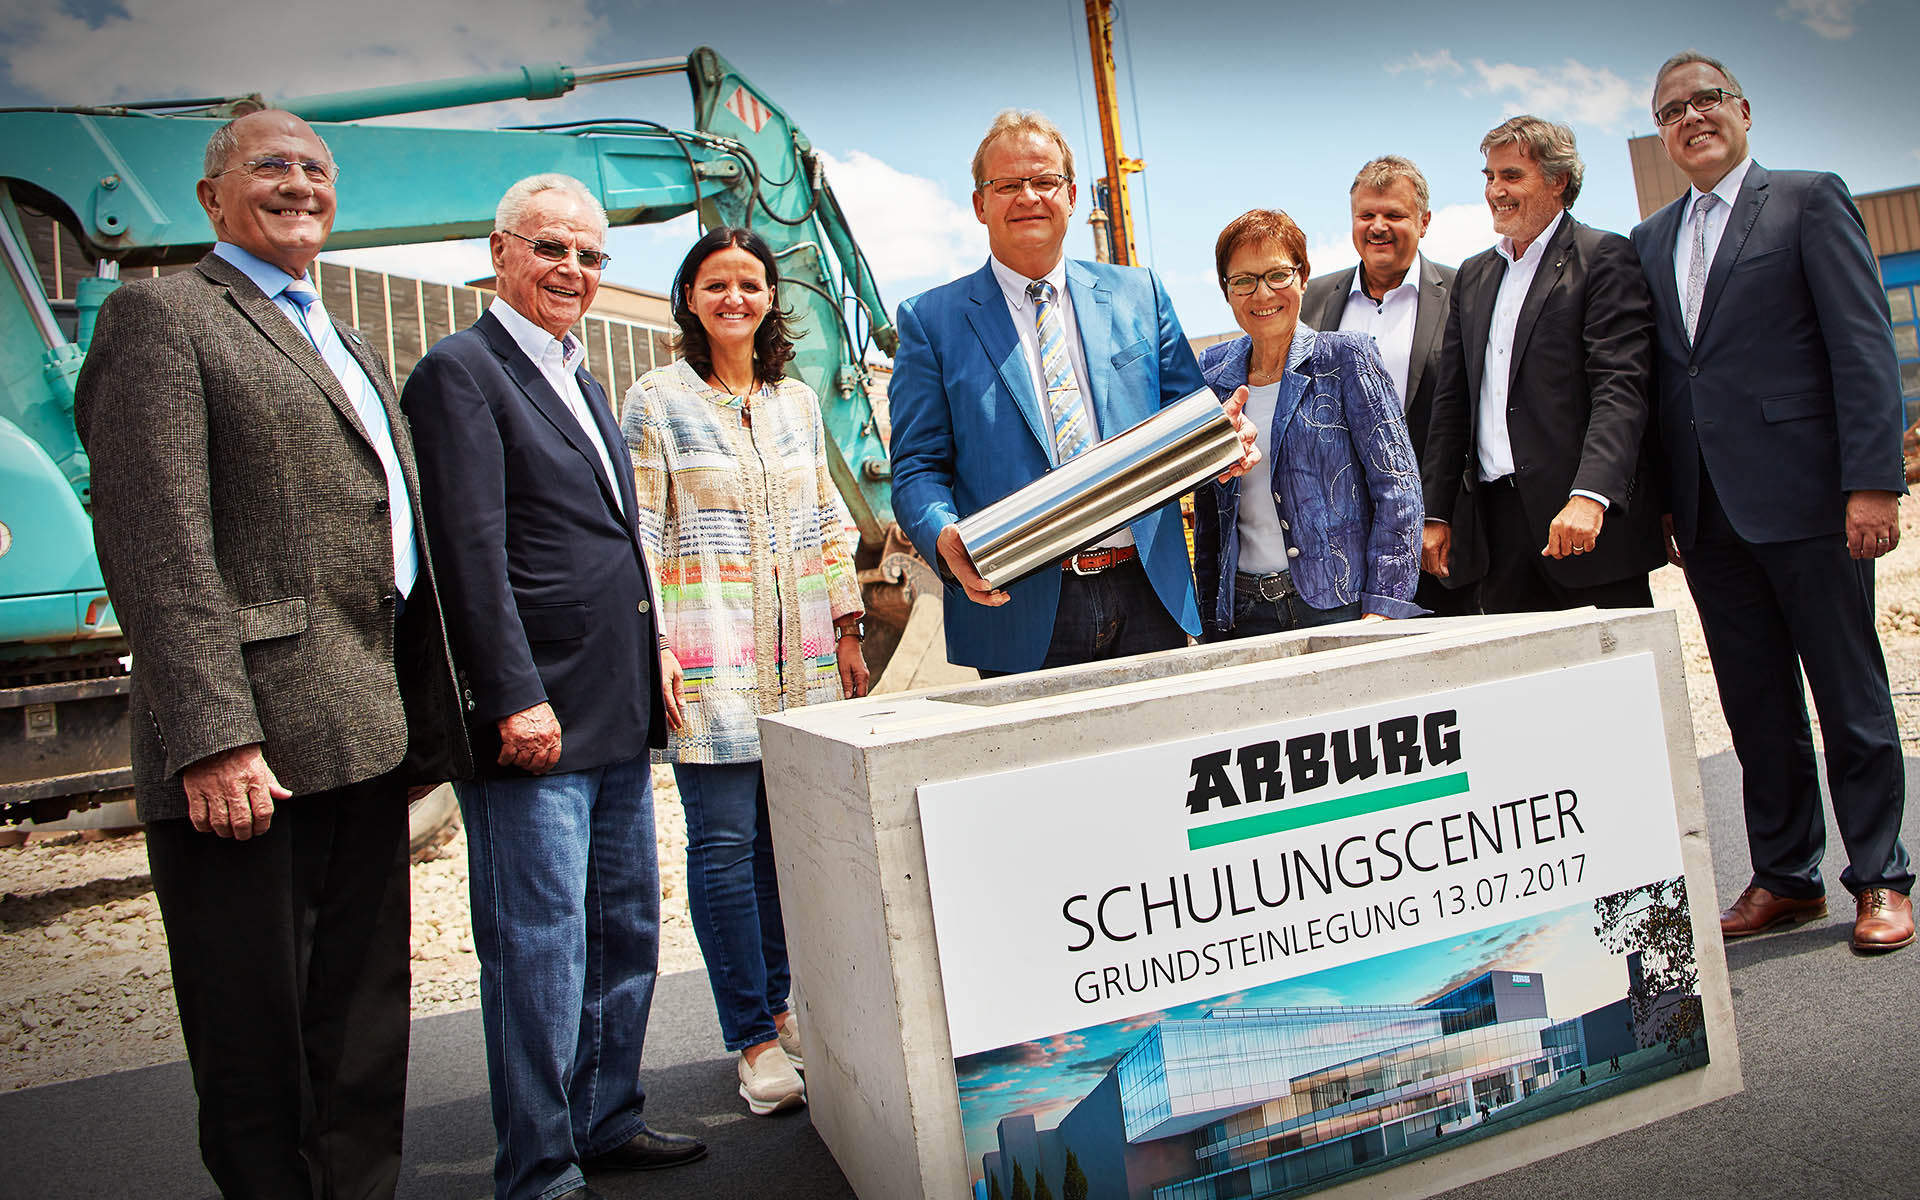 ARBURG builds a Training Center